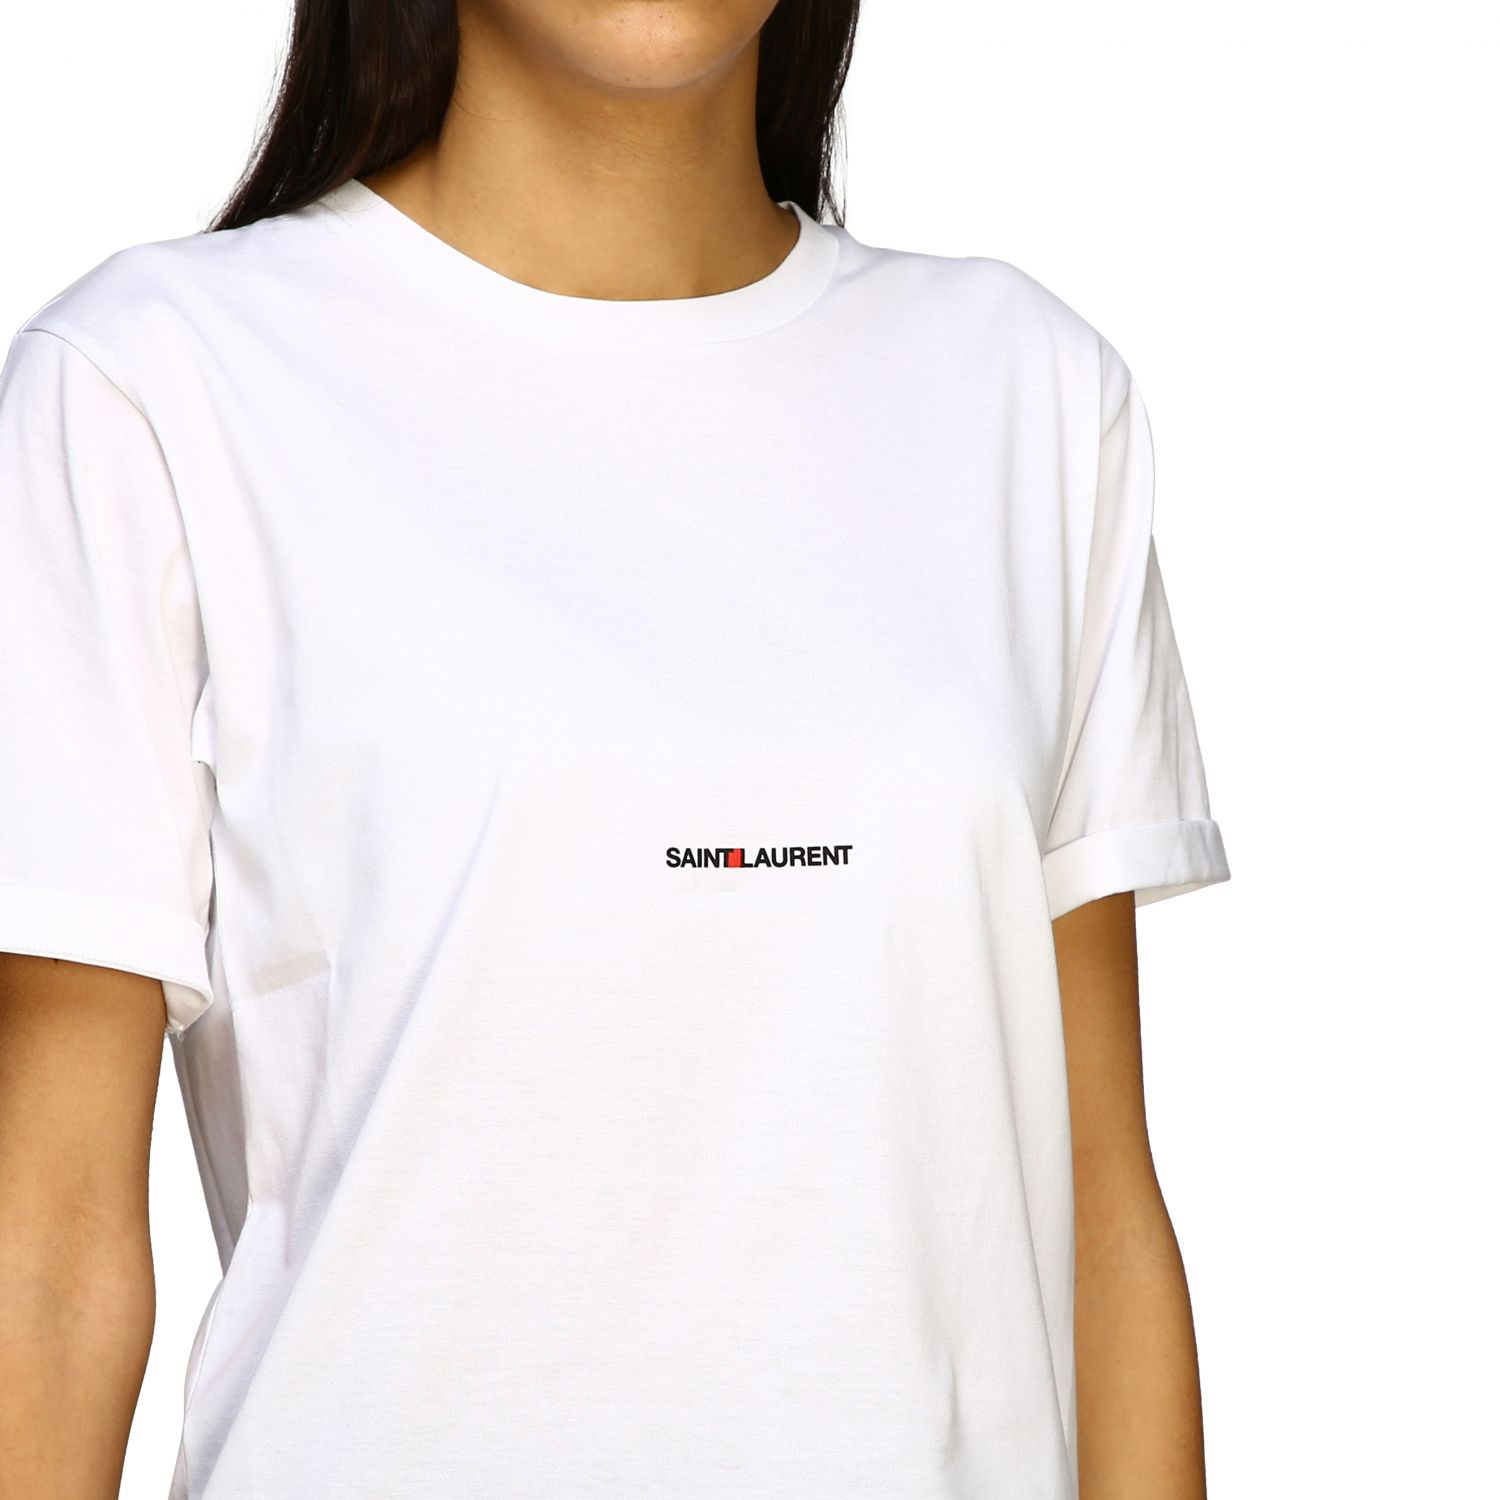 Saint Laurent T-Shirt mit Logo weiß 5